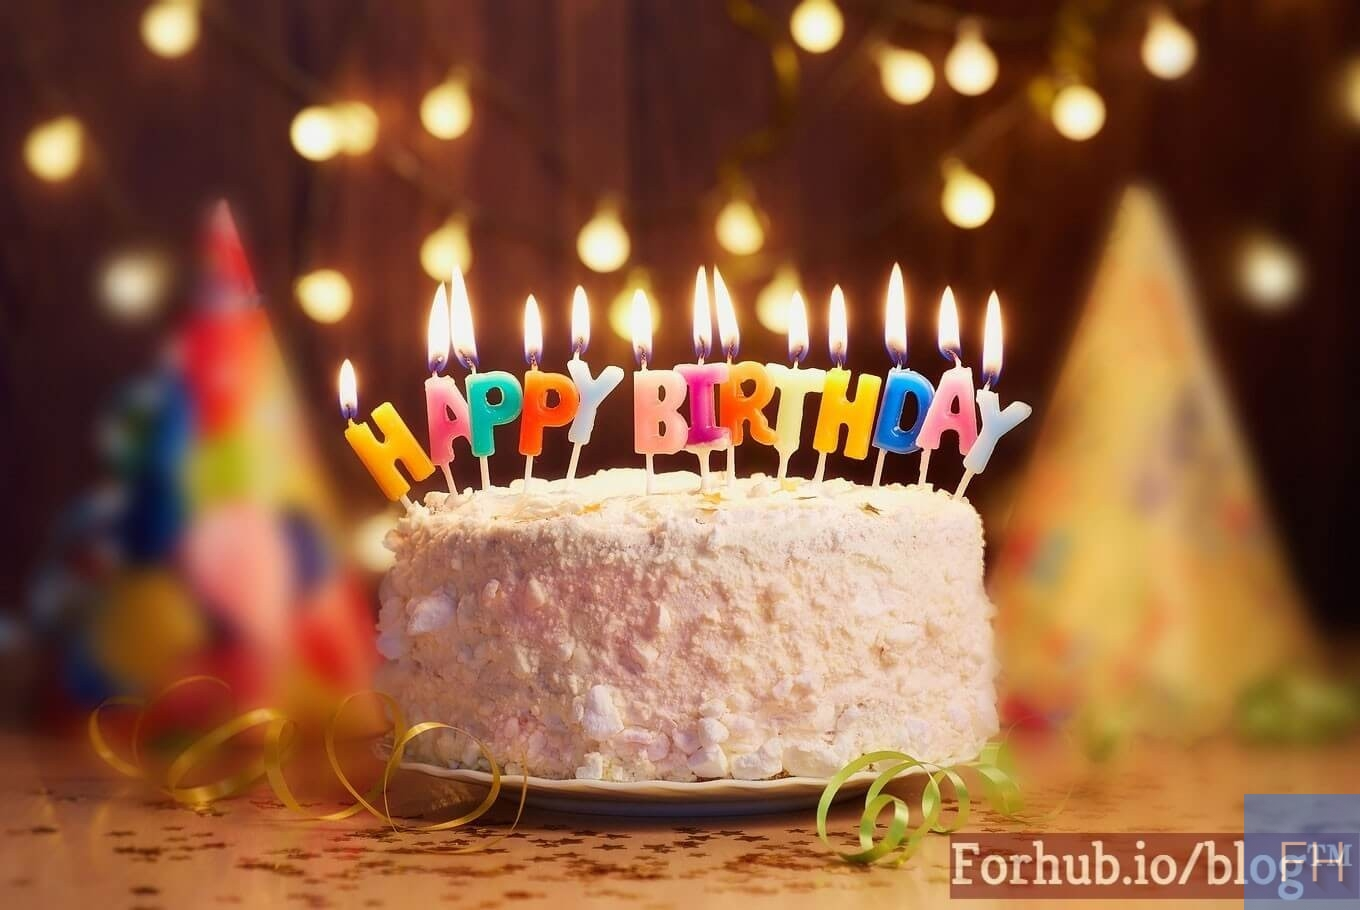 900 Best The Happy Birthday Wishes Quotes 2018 For All